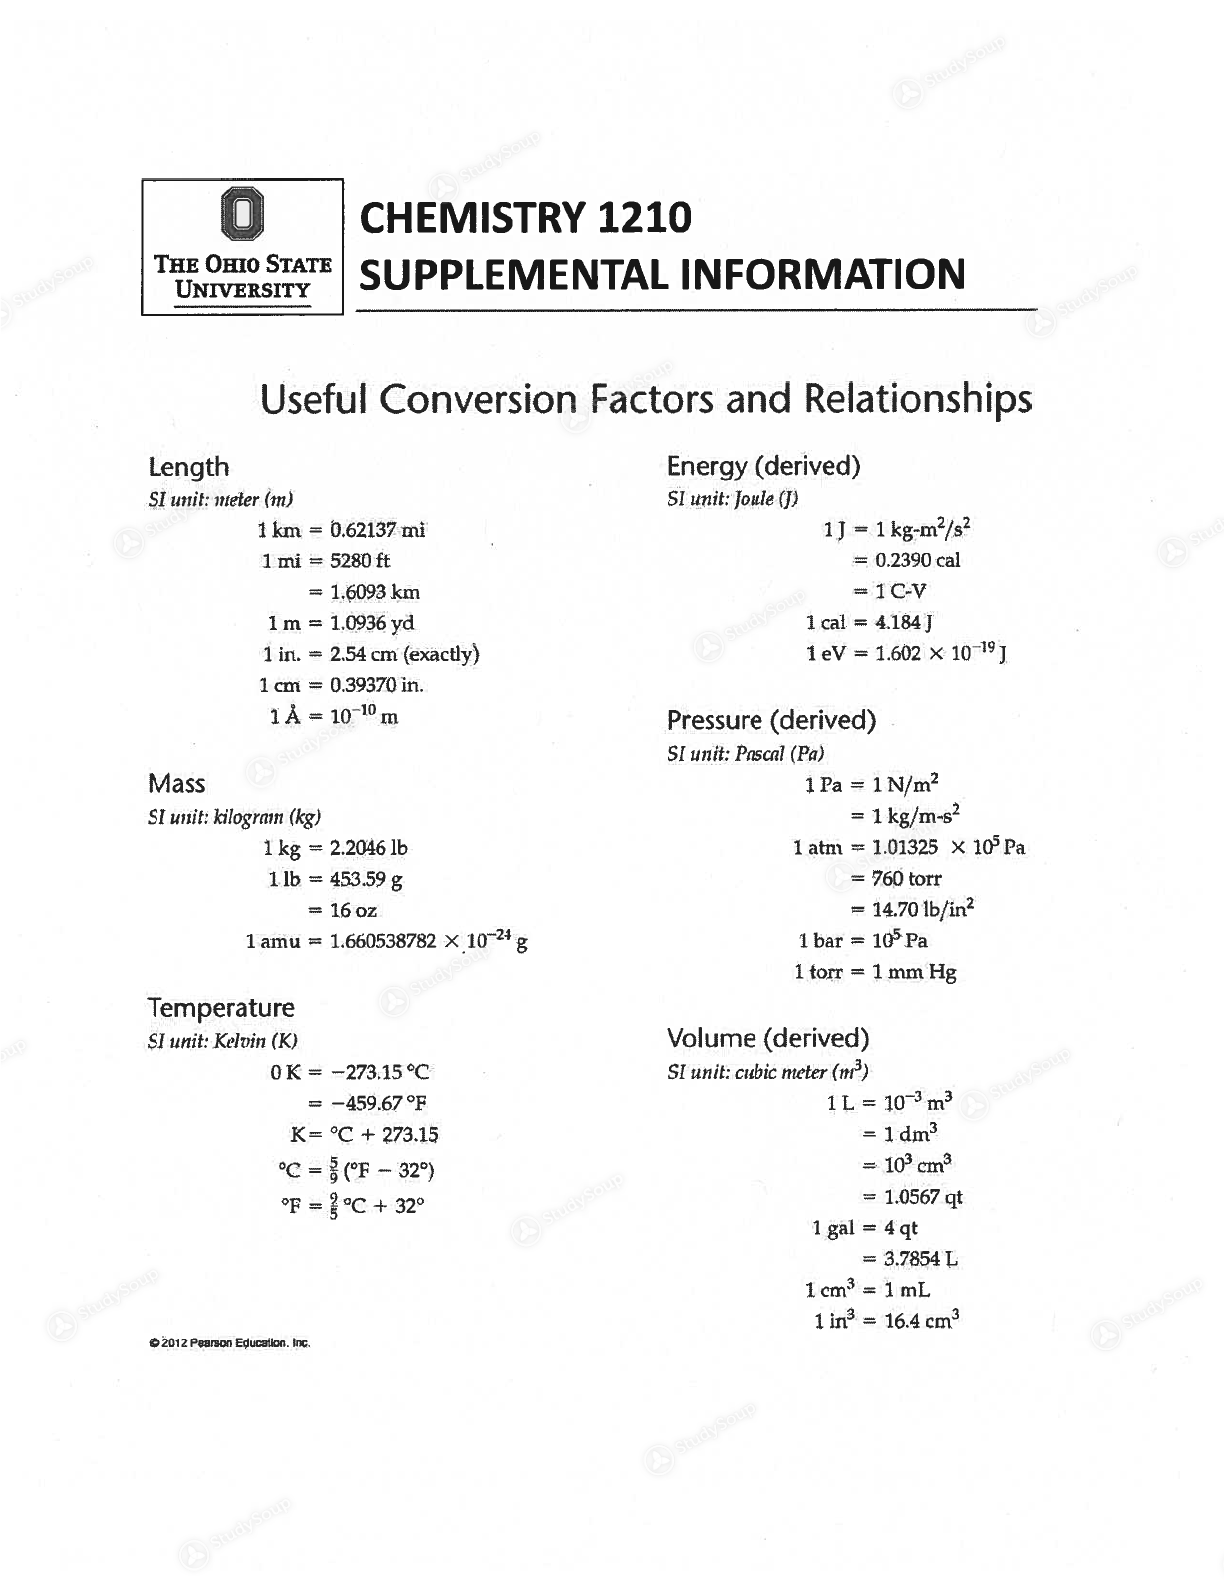 Osu Chemistry Periodic Table Class Notes Studysoup